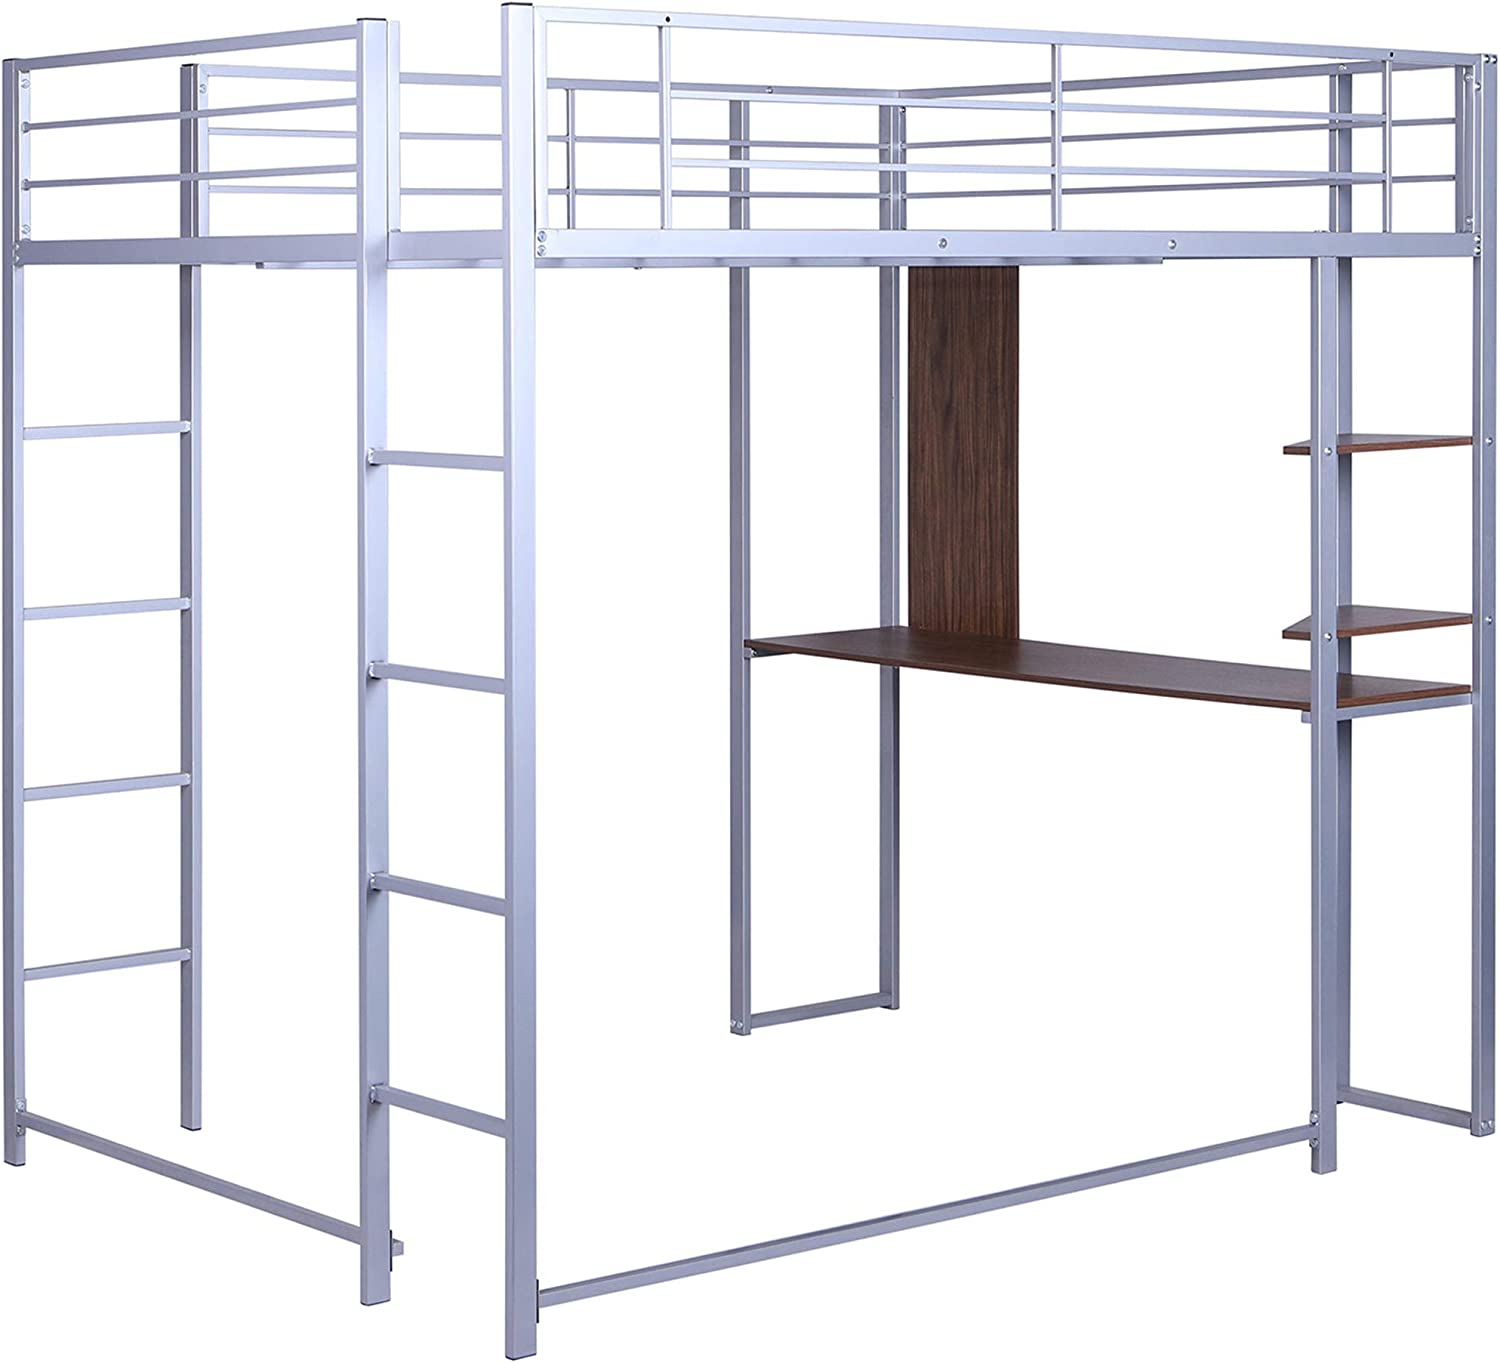 Buy Full Loft Beds Metal Bed Frame Loft Bed With Desk And Bookcase Full Size Loft Bed For Dorm Boys Girls Teens Kids Silver Online In Indonesia B08slts3z8